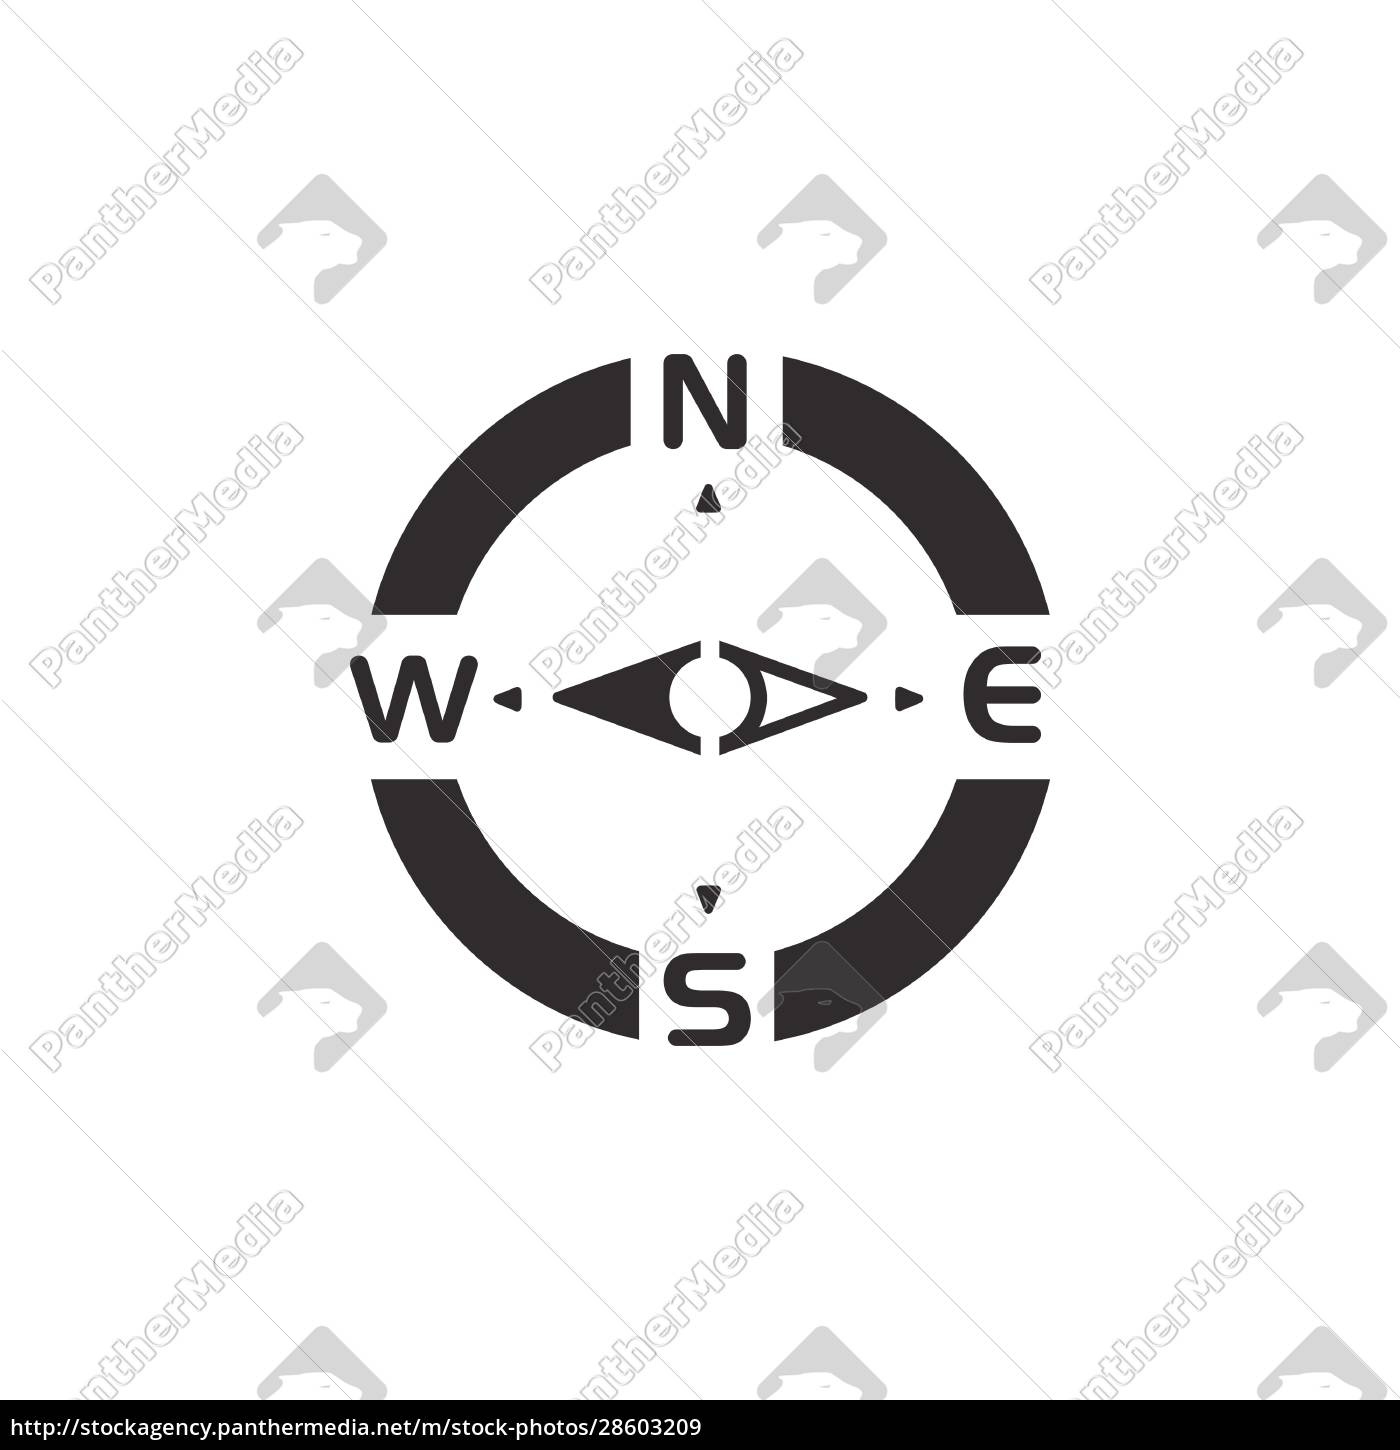 compass., west, direction., icon., weather, and - 28603209